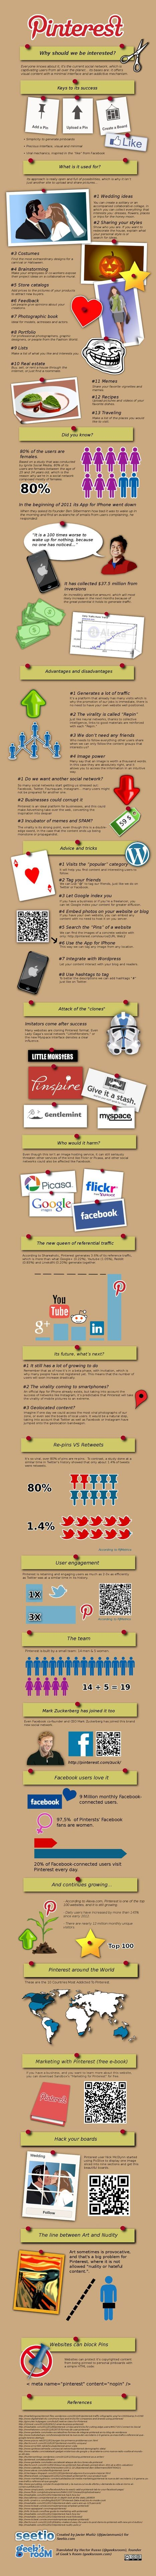 Pinterest - Why Should We Be Interested? [Infographic] | SocialMediaDesign | Scoop.it